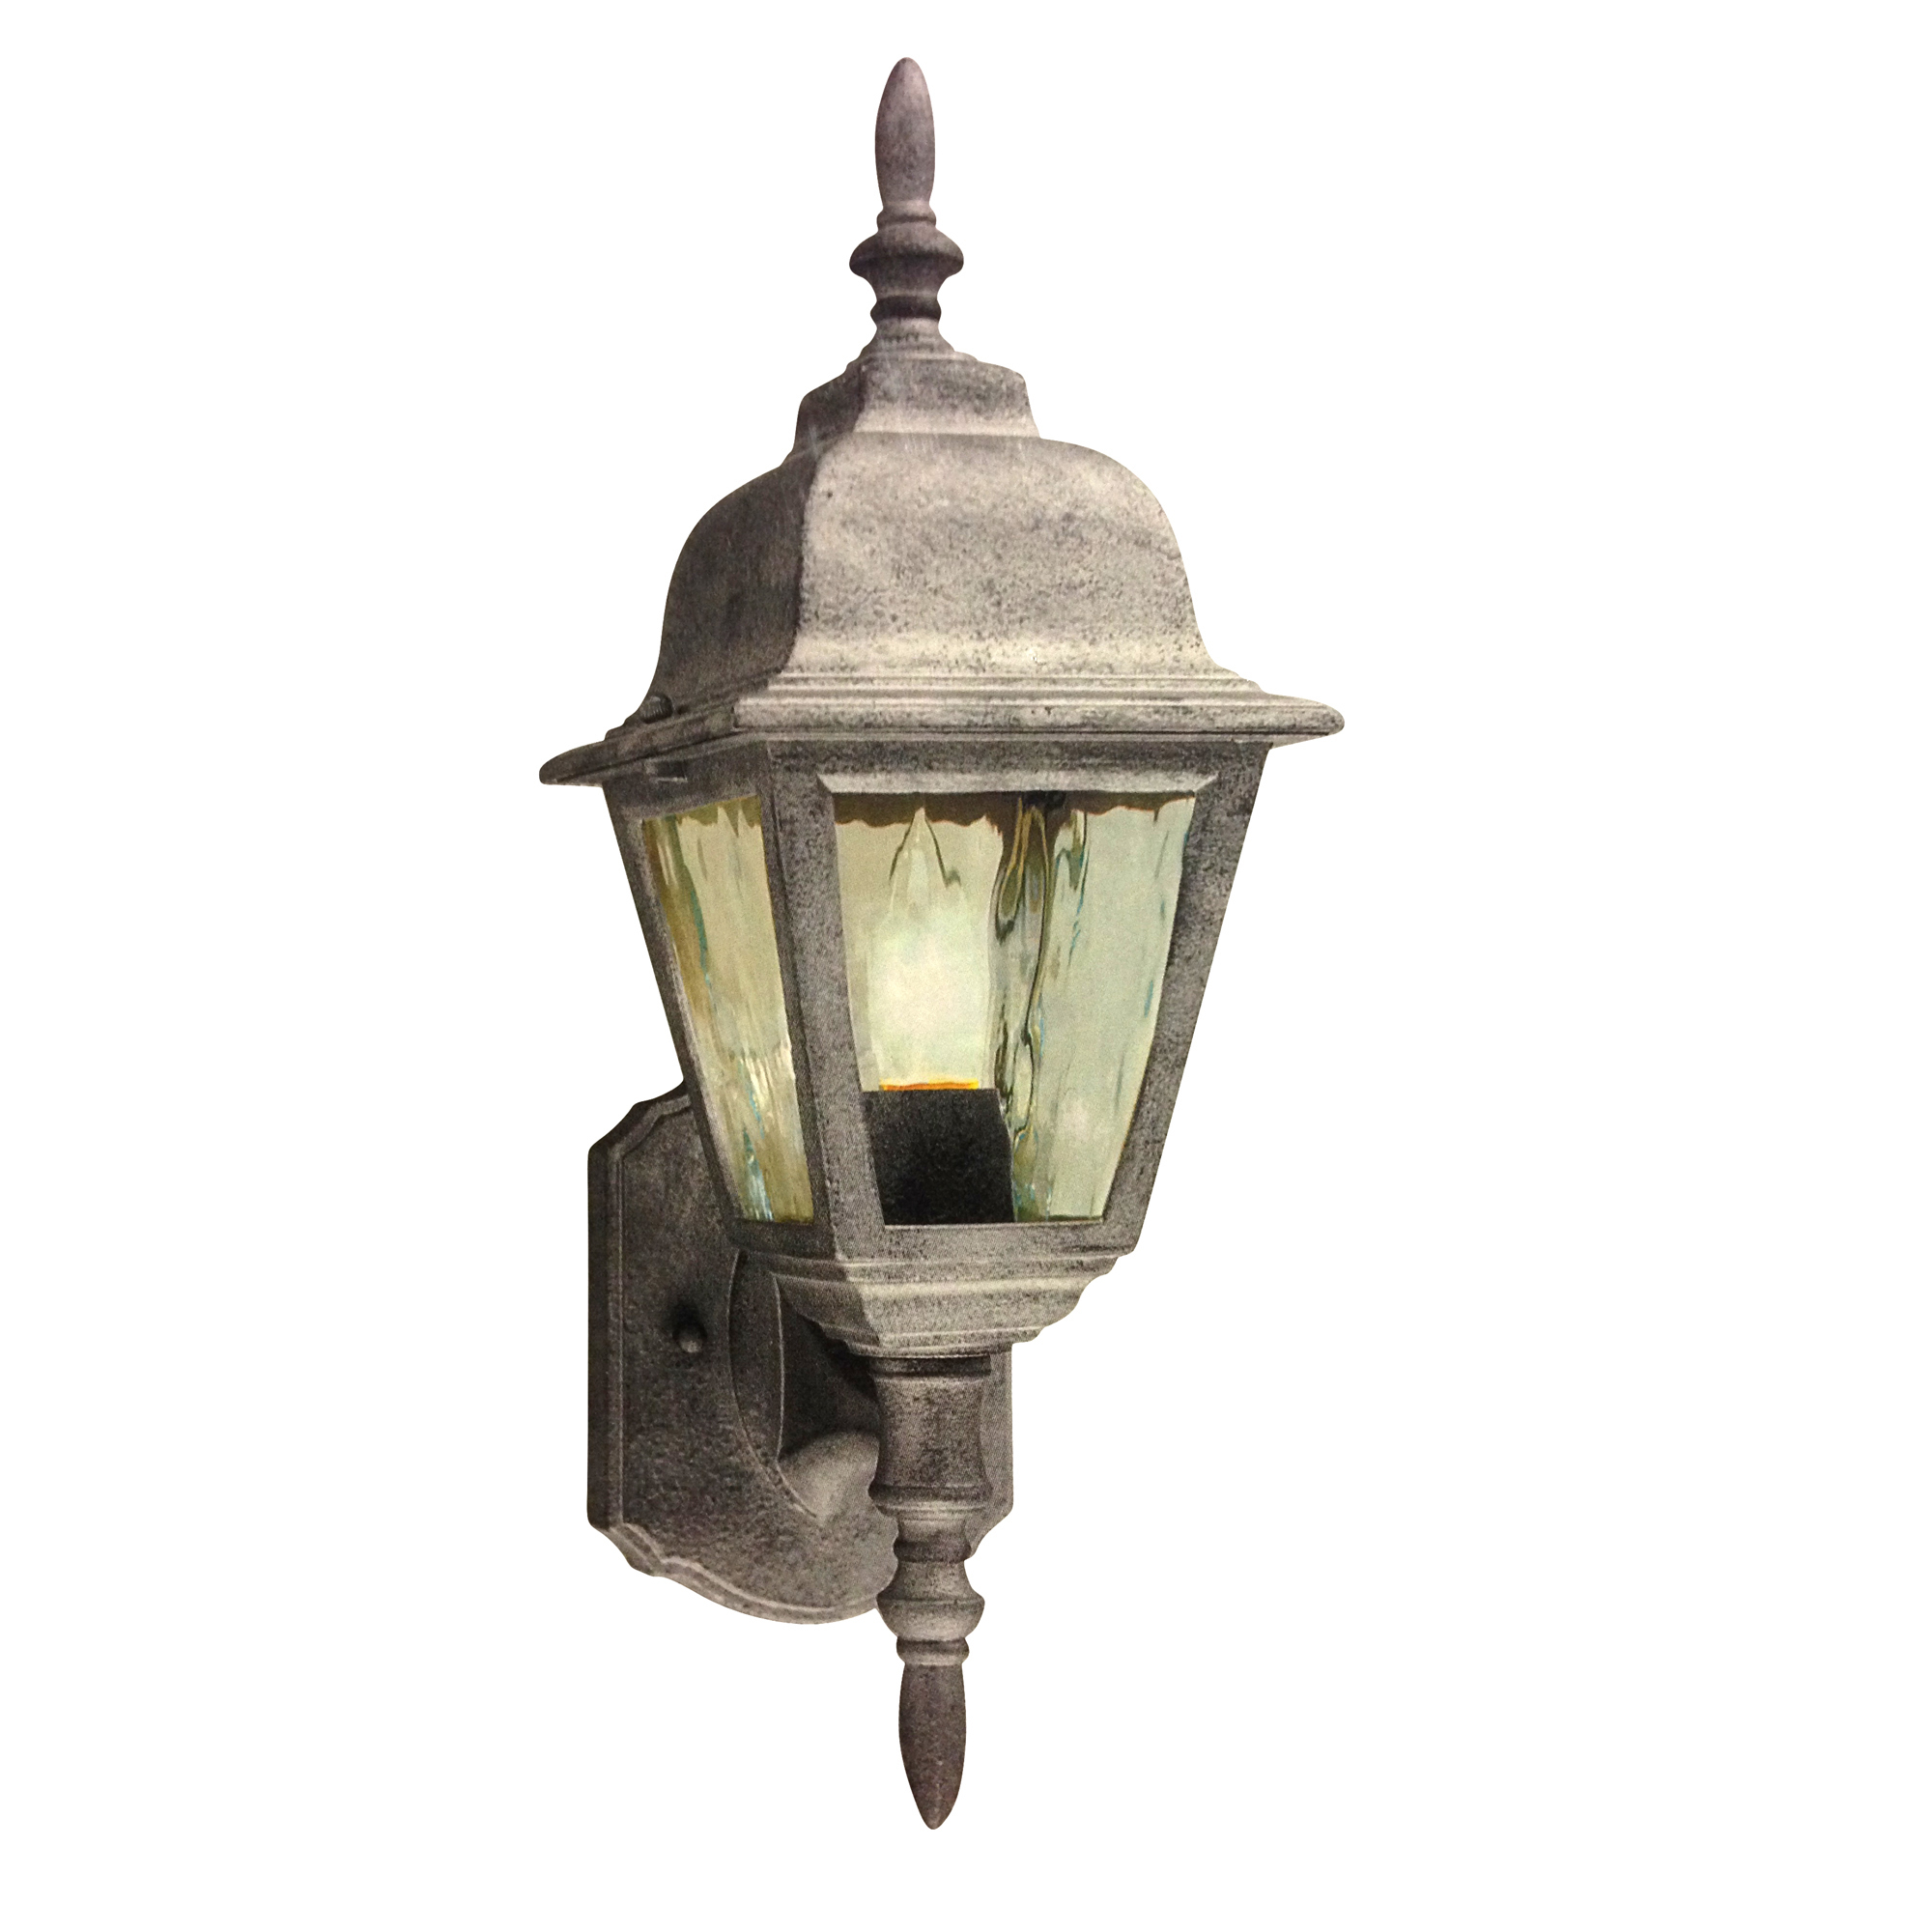 Thomas Lighting 1 Light Wall Mount Sconce M-5310-90 Outdoor Fixture Glass Weathered Silver Finish by Philips Group